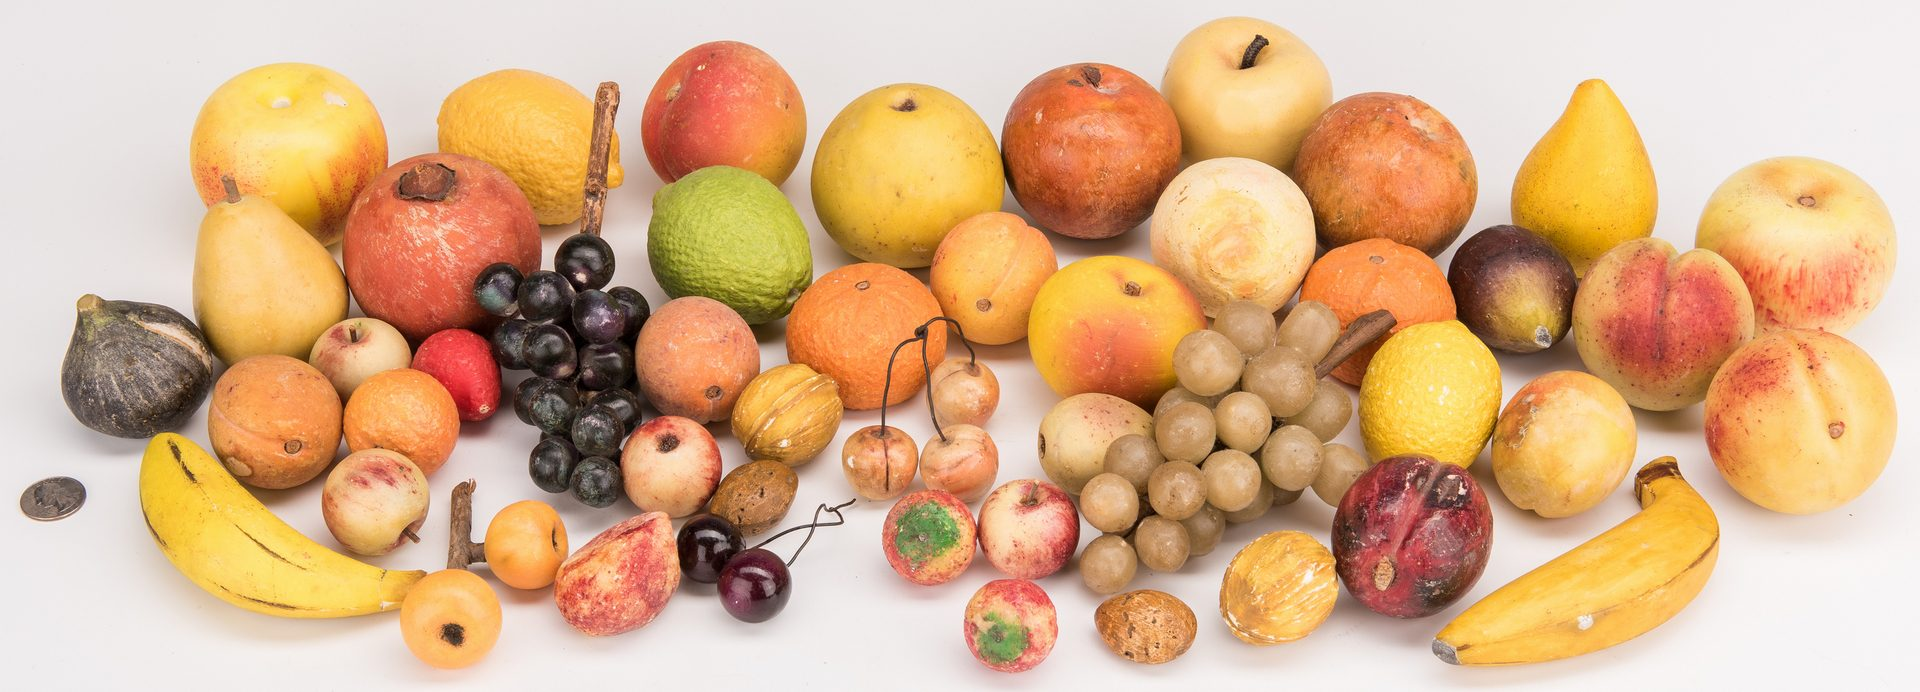 Lot 128: 48 Pieces of Stone Fruit